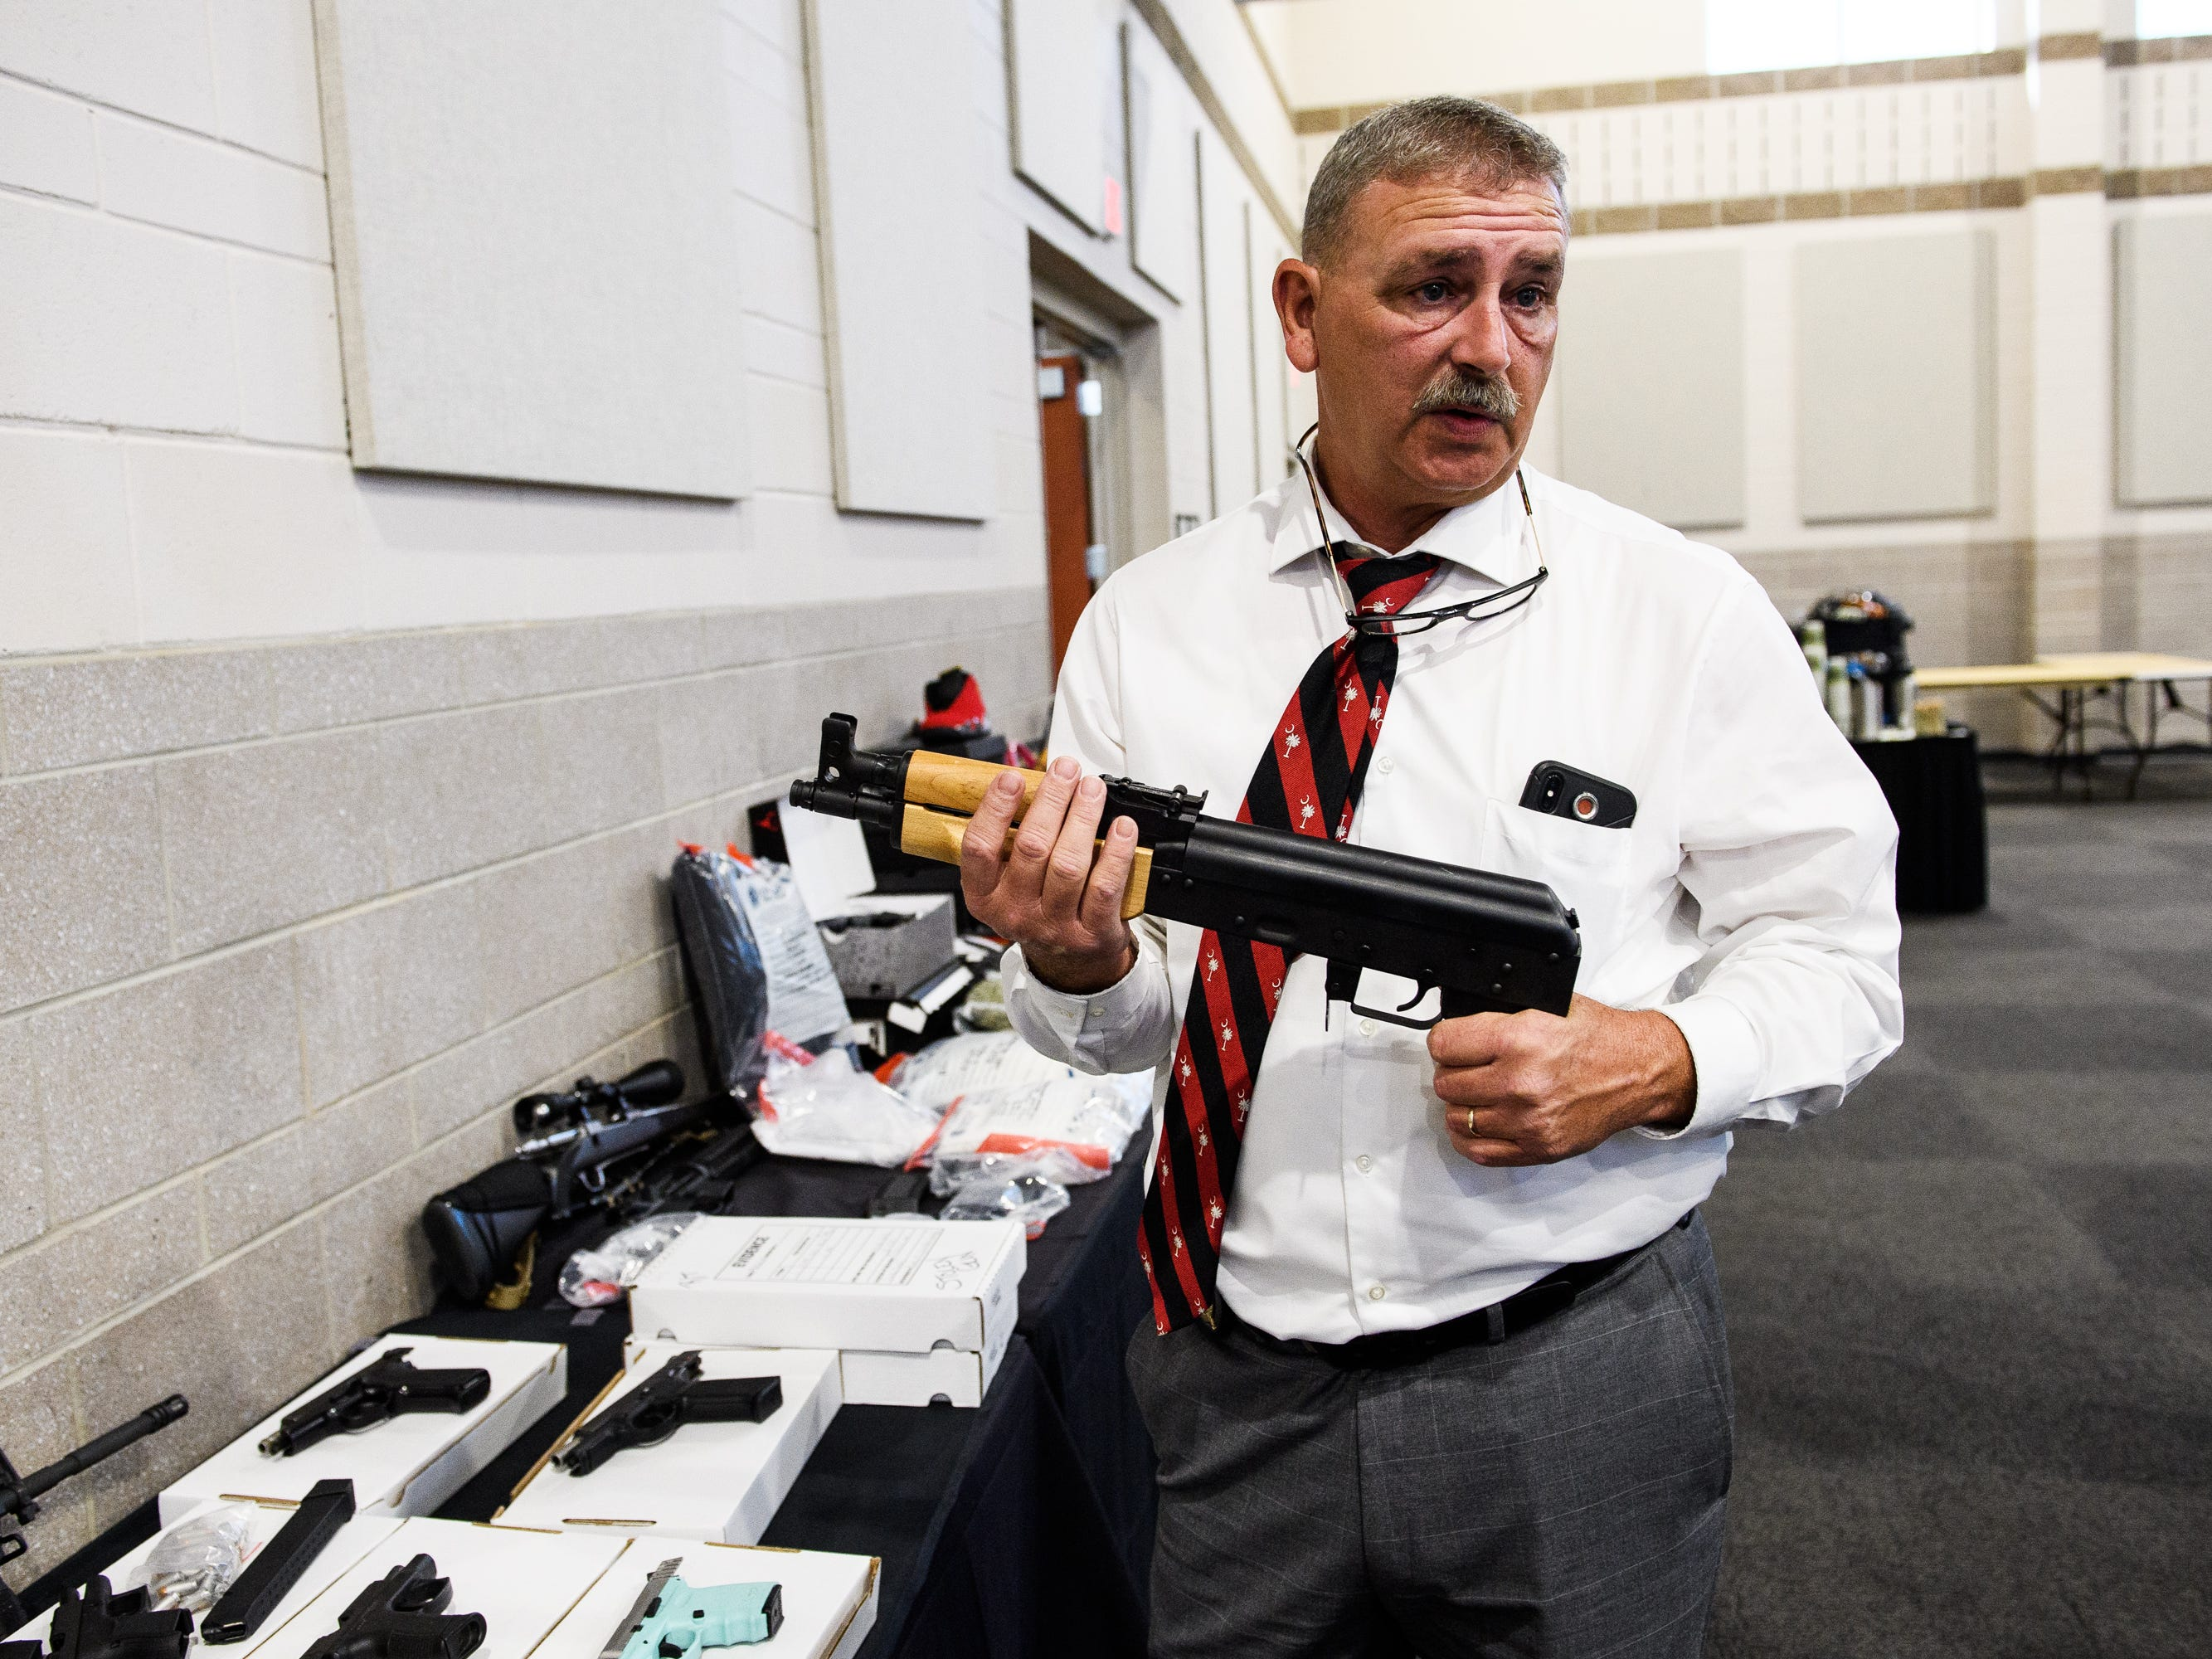 A staunch defendant of civil forfeiture, Spartanburg County Sheriff Chuck Wright holds one of the guns seized during last year's Operation Rolling Thunder on Friday, May 4, 2018.